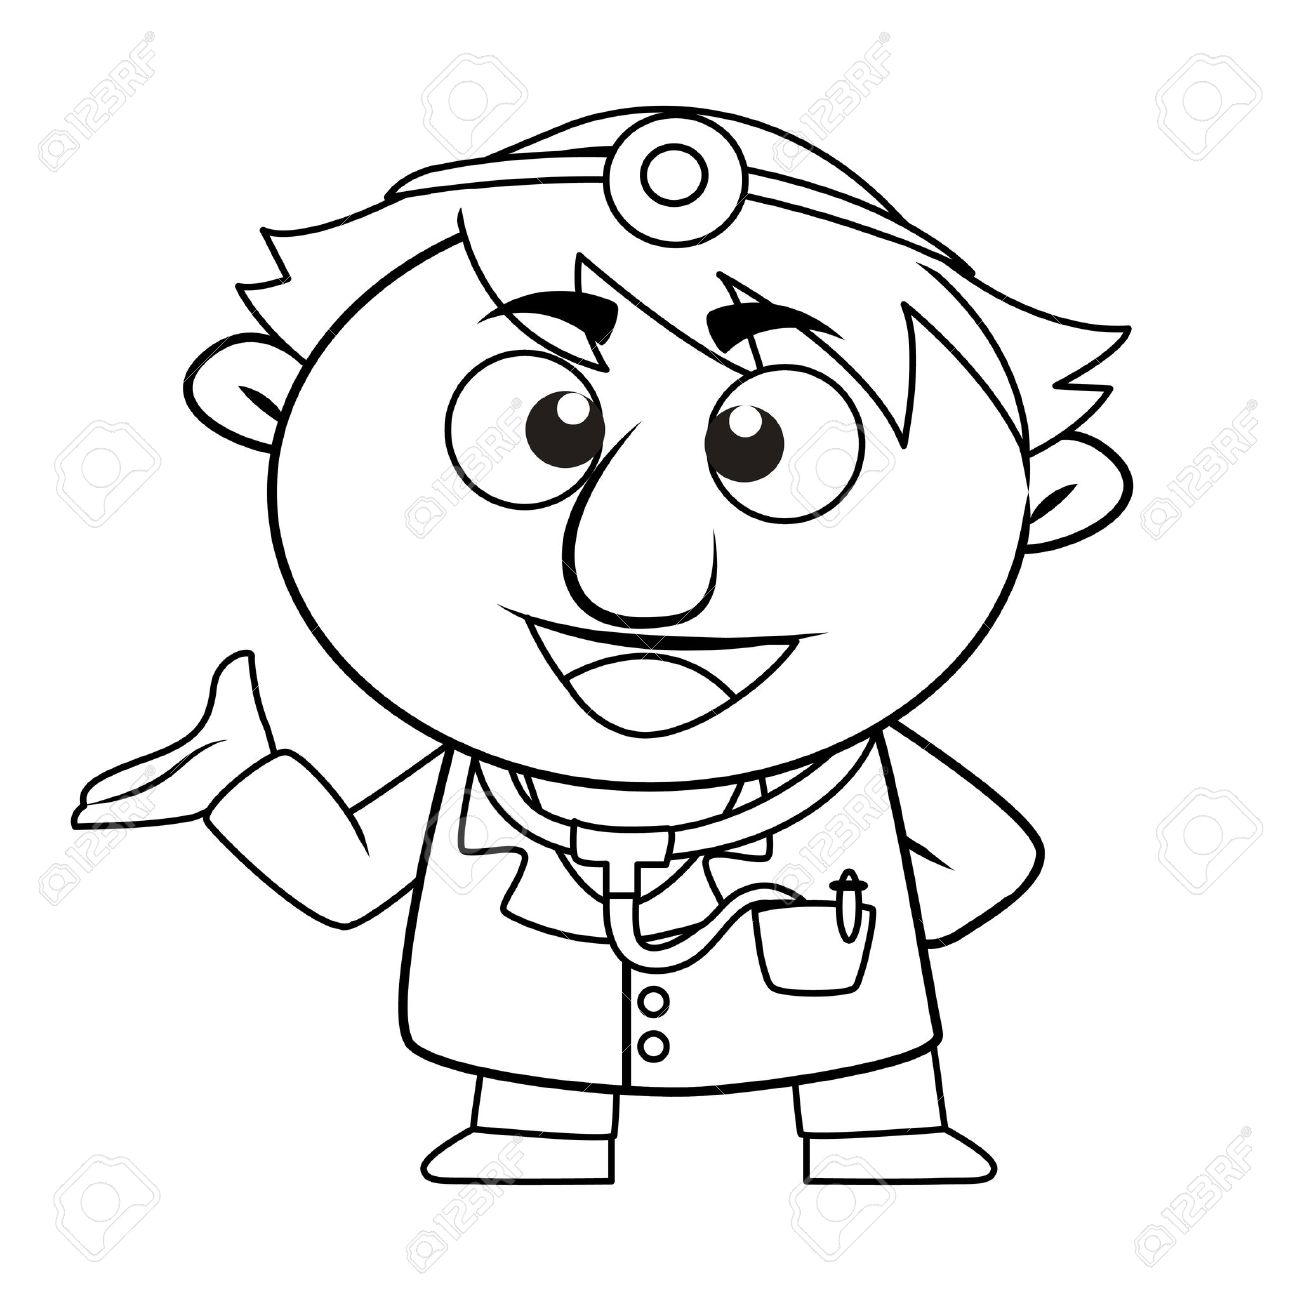 black and white coloring page outline of a doctor royalty free rh 123rf com Dentist Clip Art Black and White doctor black and white clipart